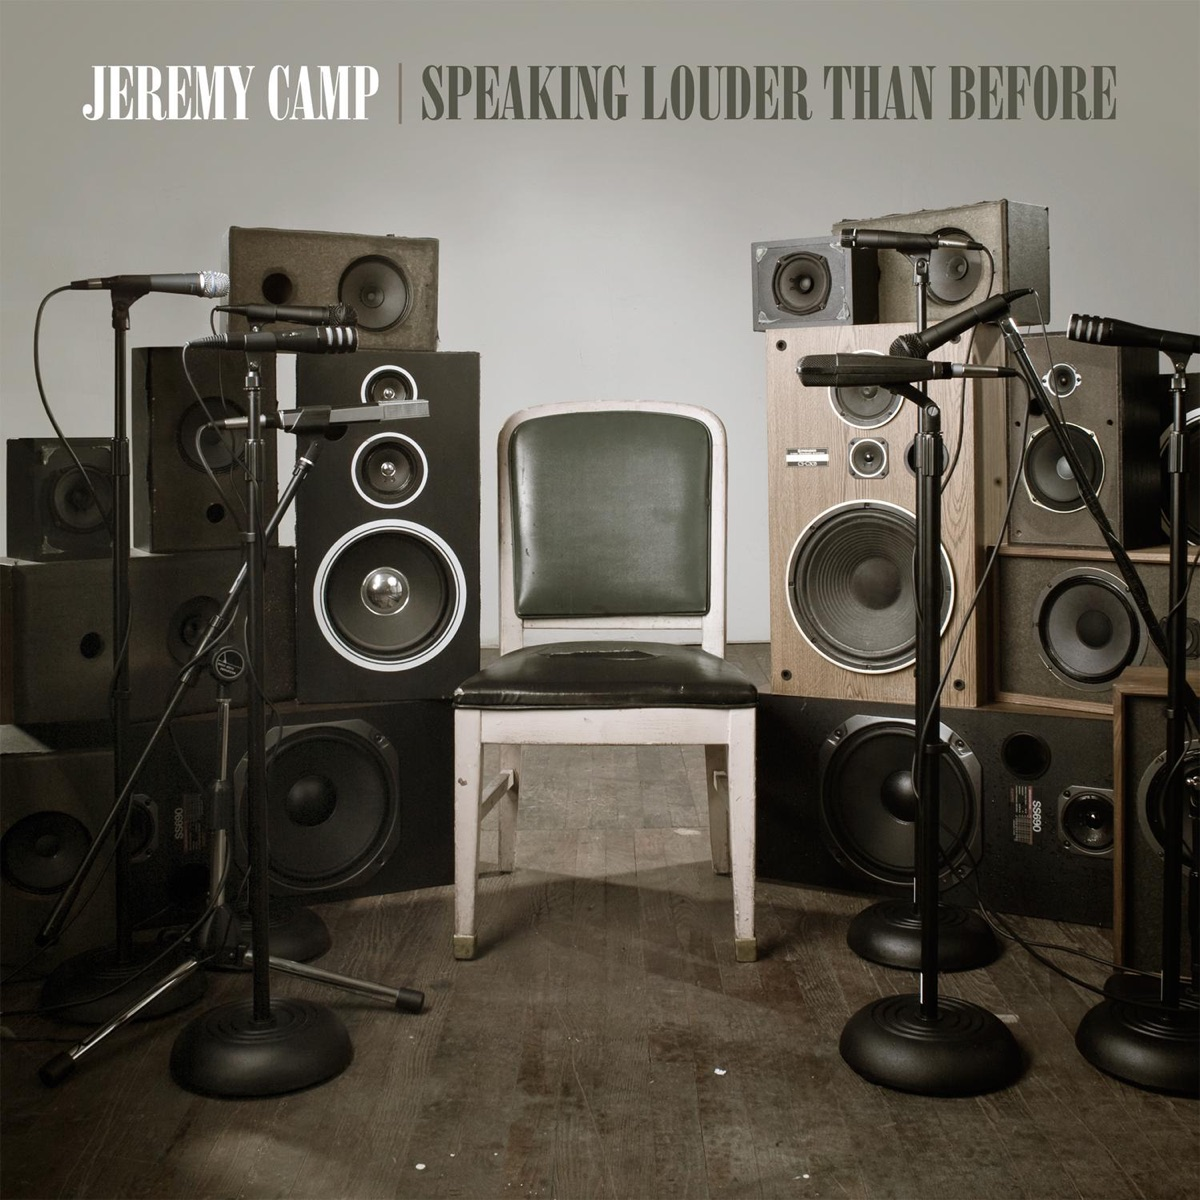 Speaking Louder Than Before Jeremy Camp CD cover